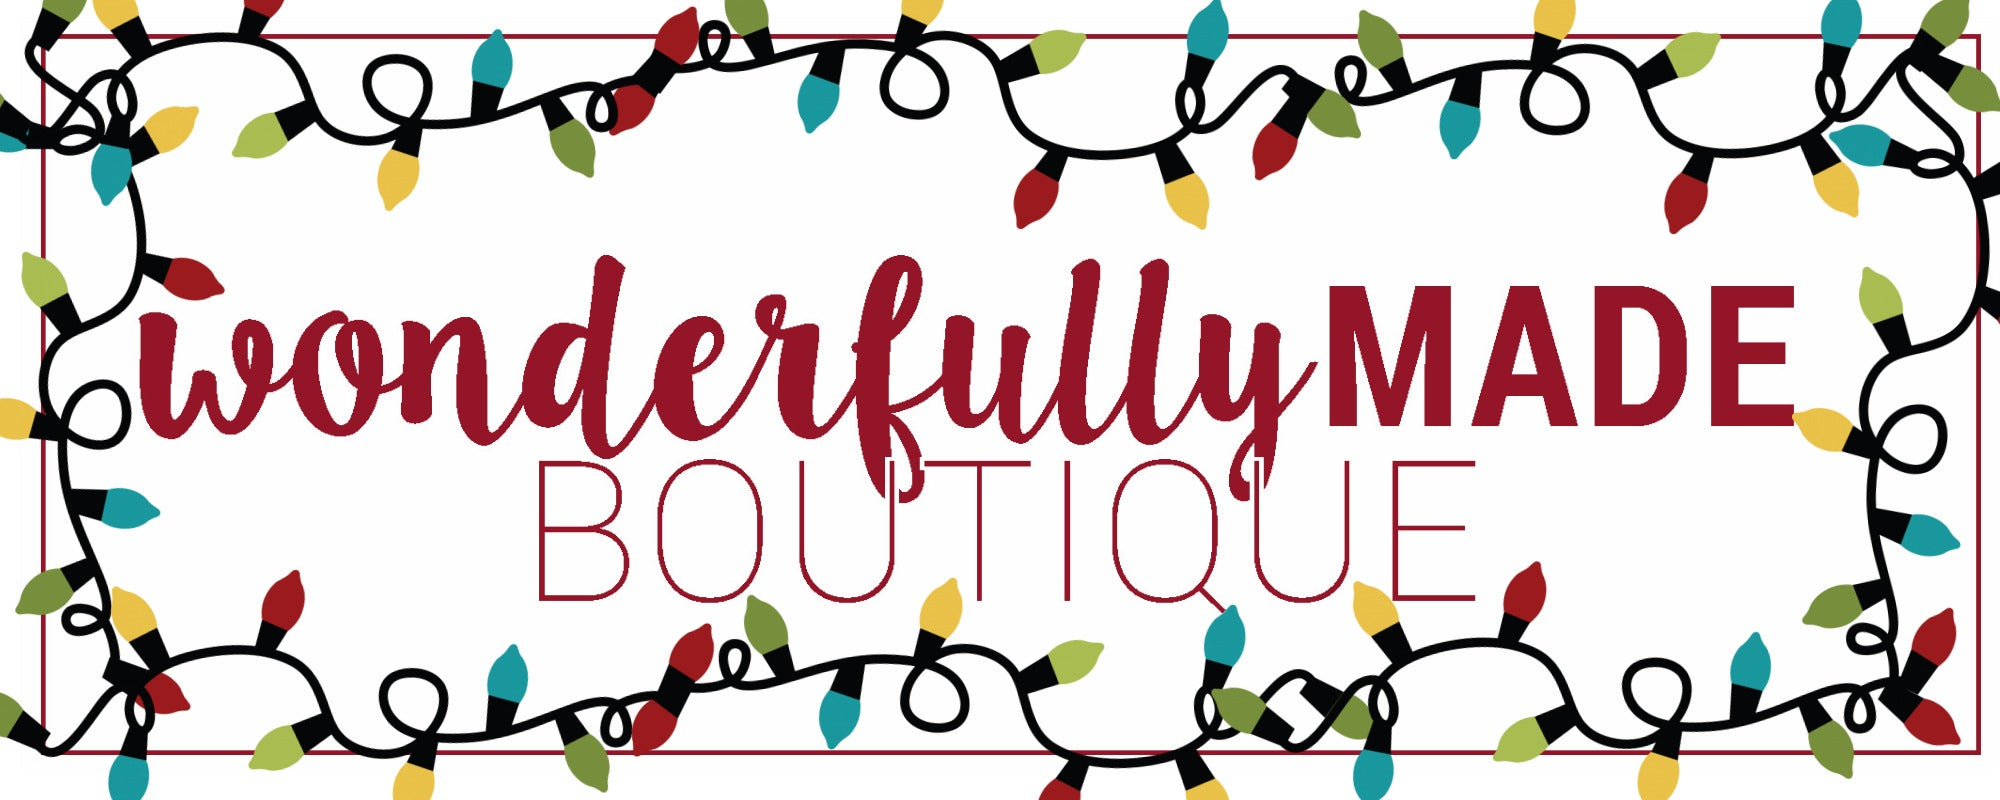 Wonderfully Made Boutique